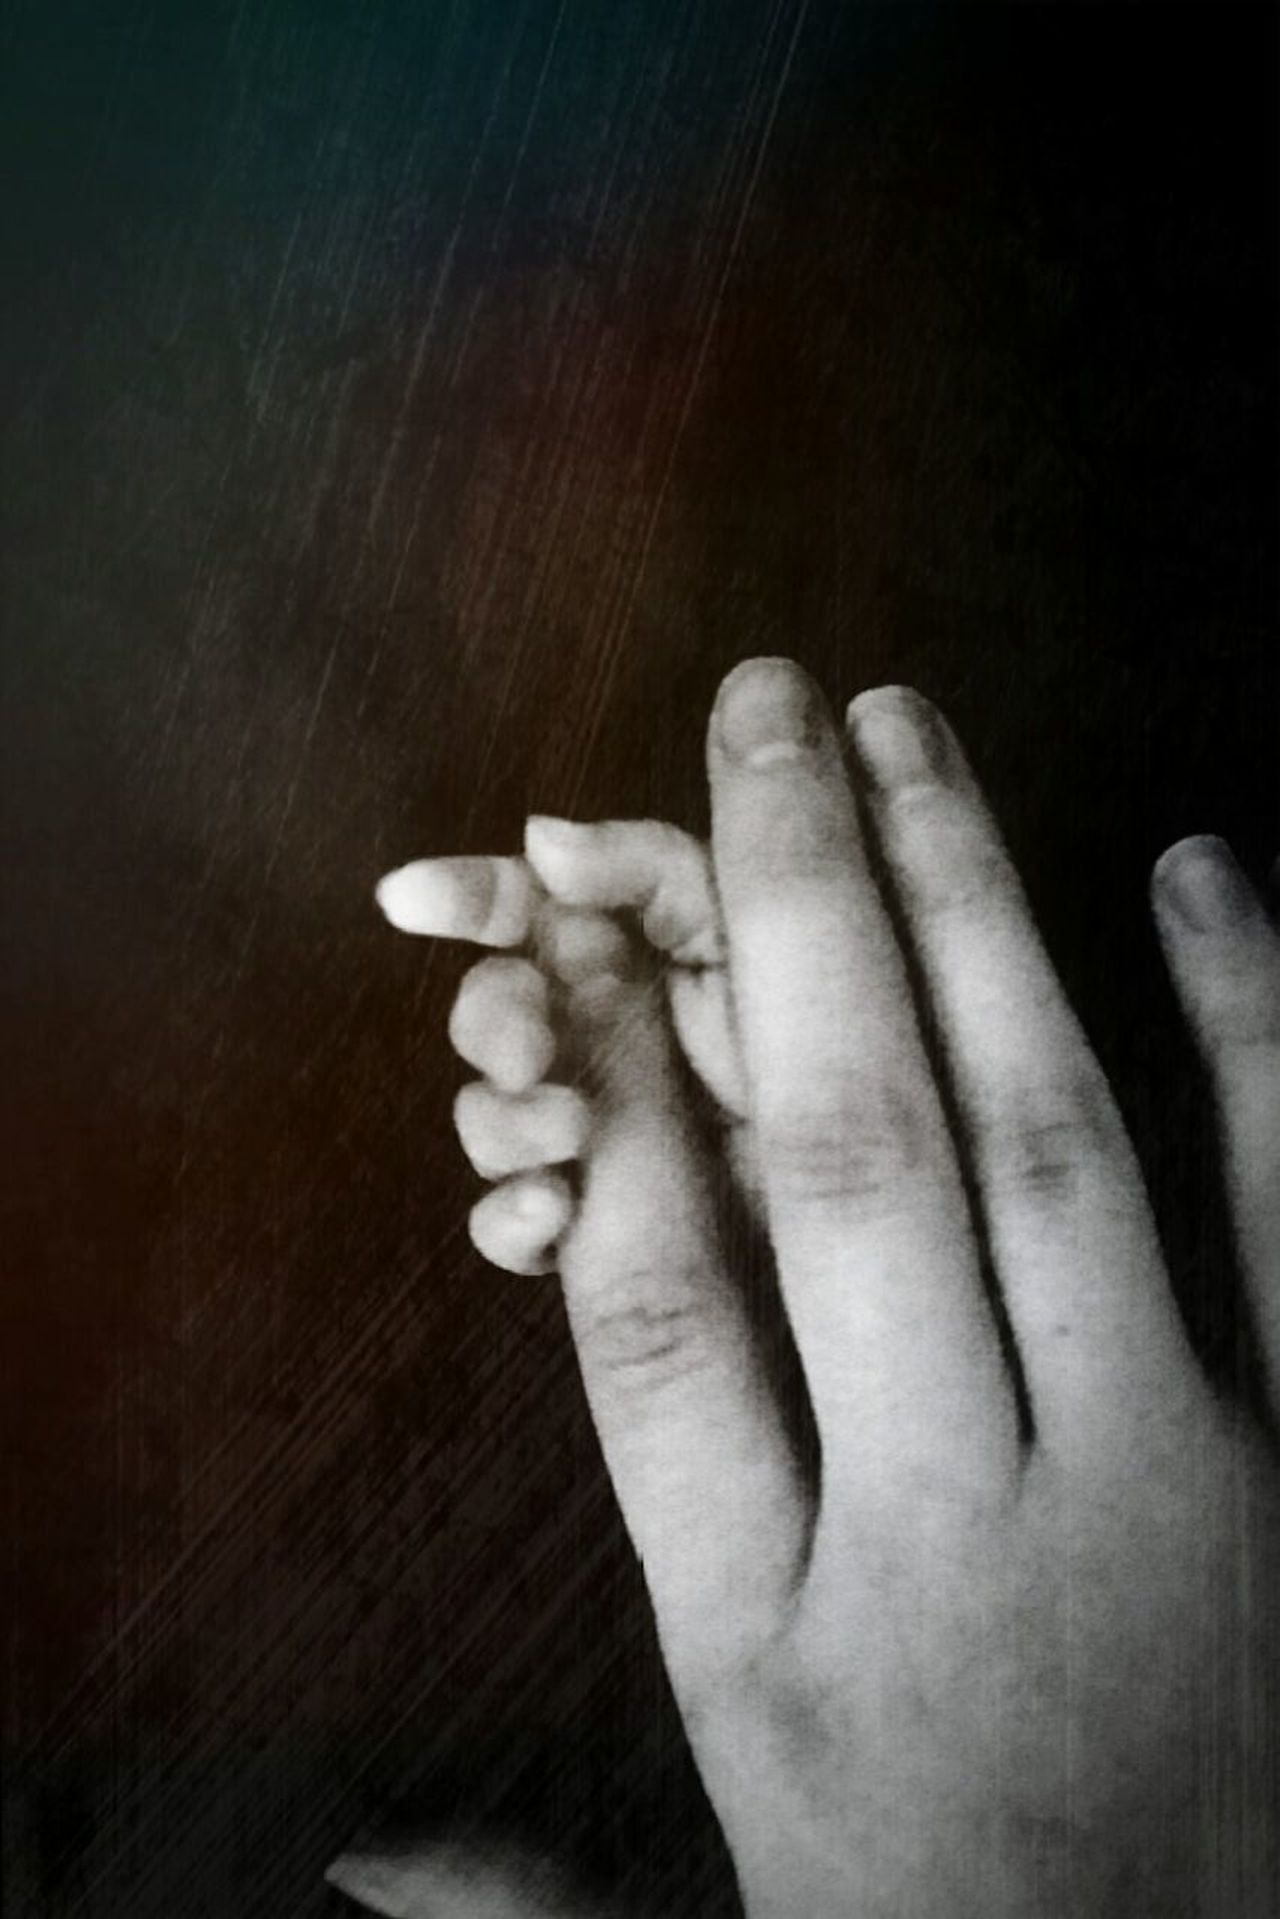 Mother and child. Human Body Part Human Hand People Close-up Low Saturation Holding Hands Holding Grip Baby Girl Woman Hold Infant Child Mother Mother And Child EyeEmNewHere